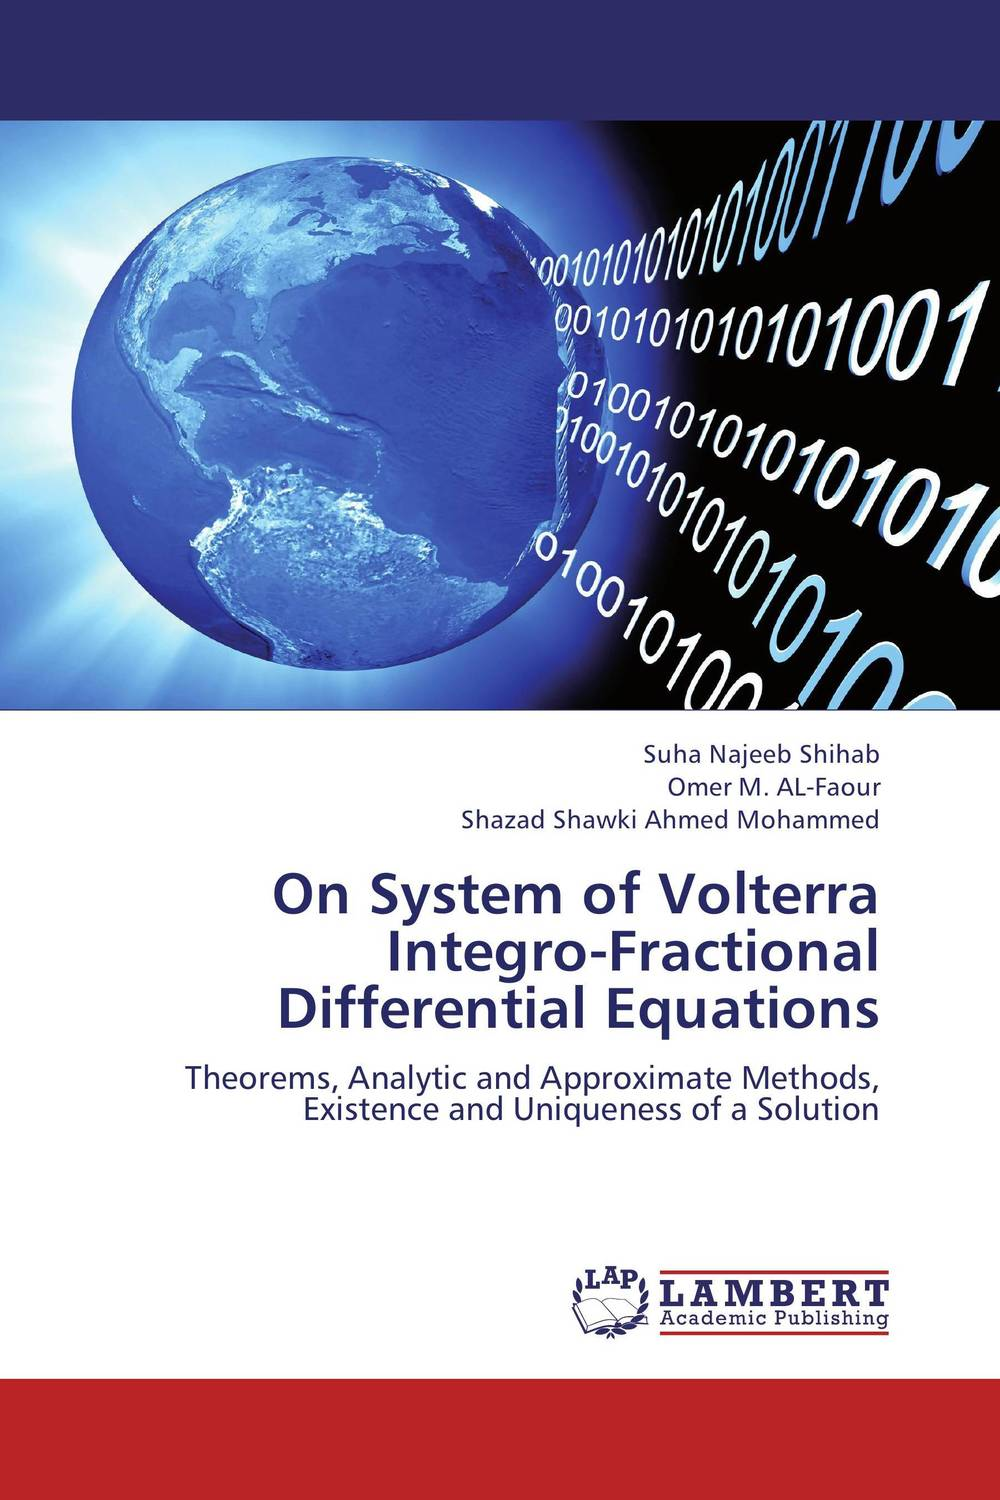 On System of Volterra Integro-Fractional Differential Equations collocation methods for volterra integral and related functional differential equations